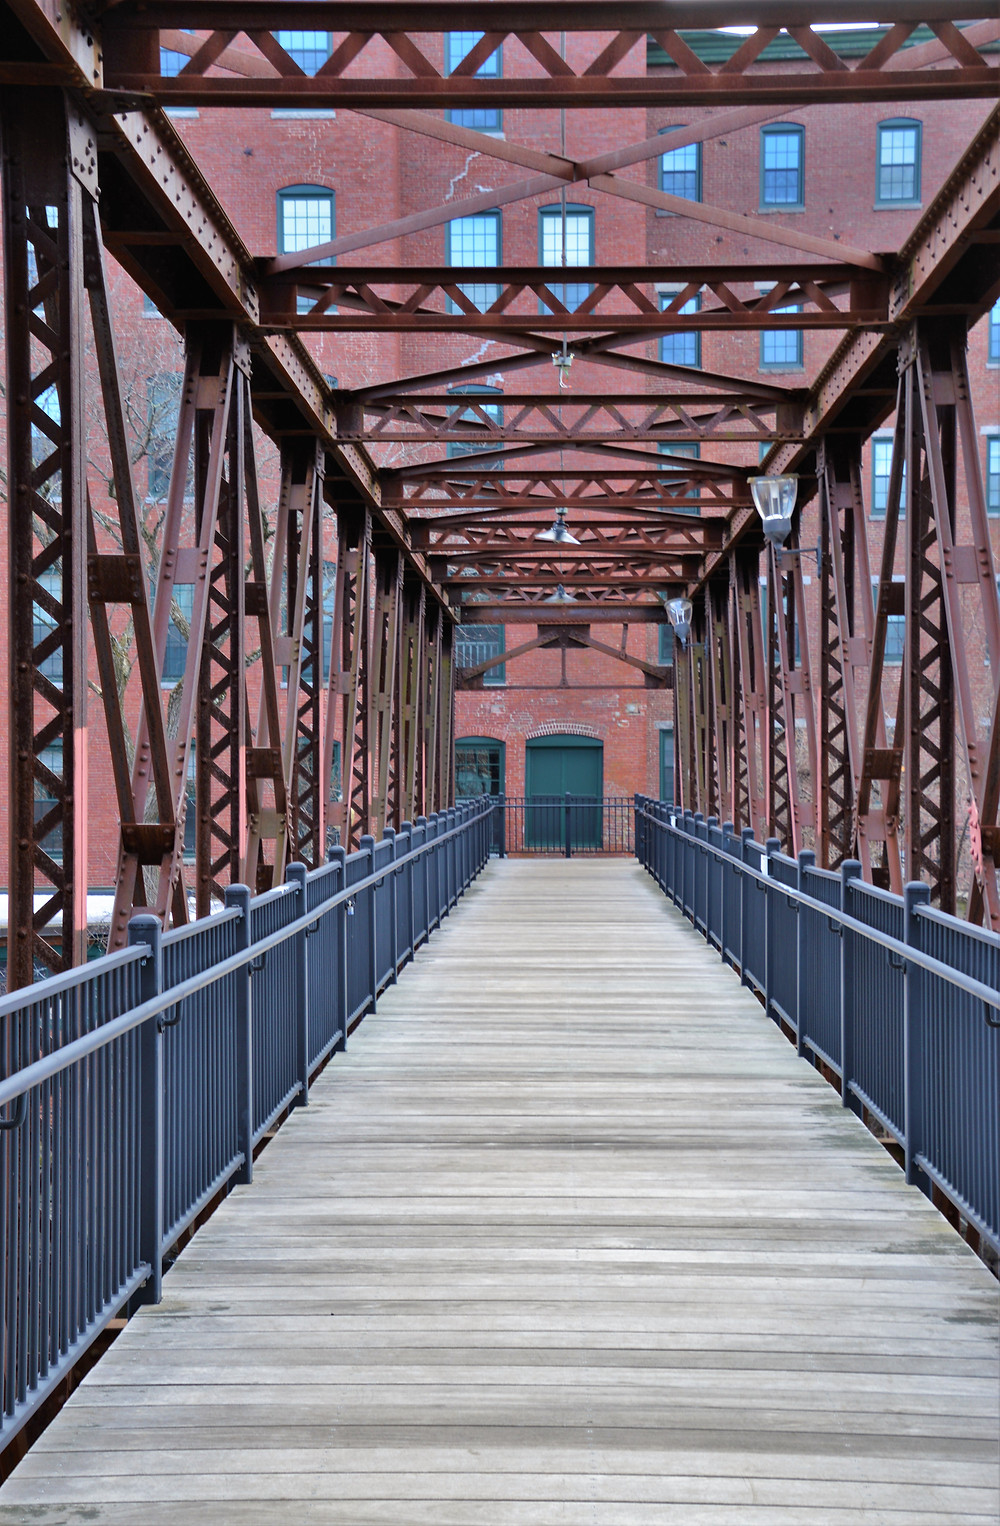 Warren Truss Bridge built in 1902 connected the South Cotton Storehouse to the Nashua Manufacturing Co mill buildings